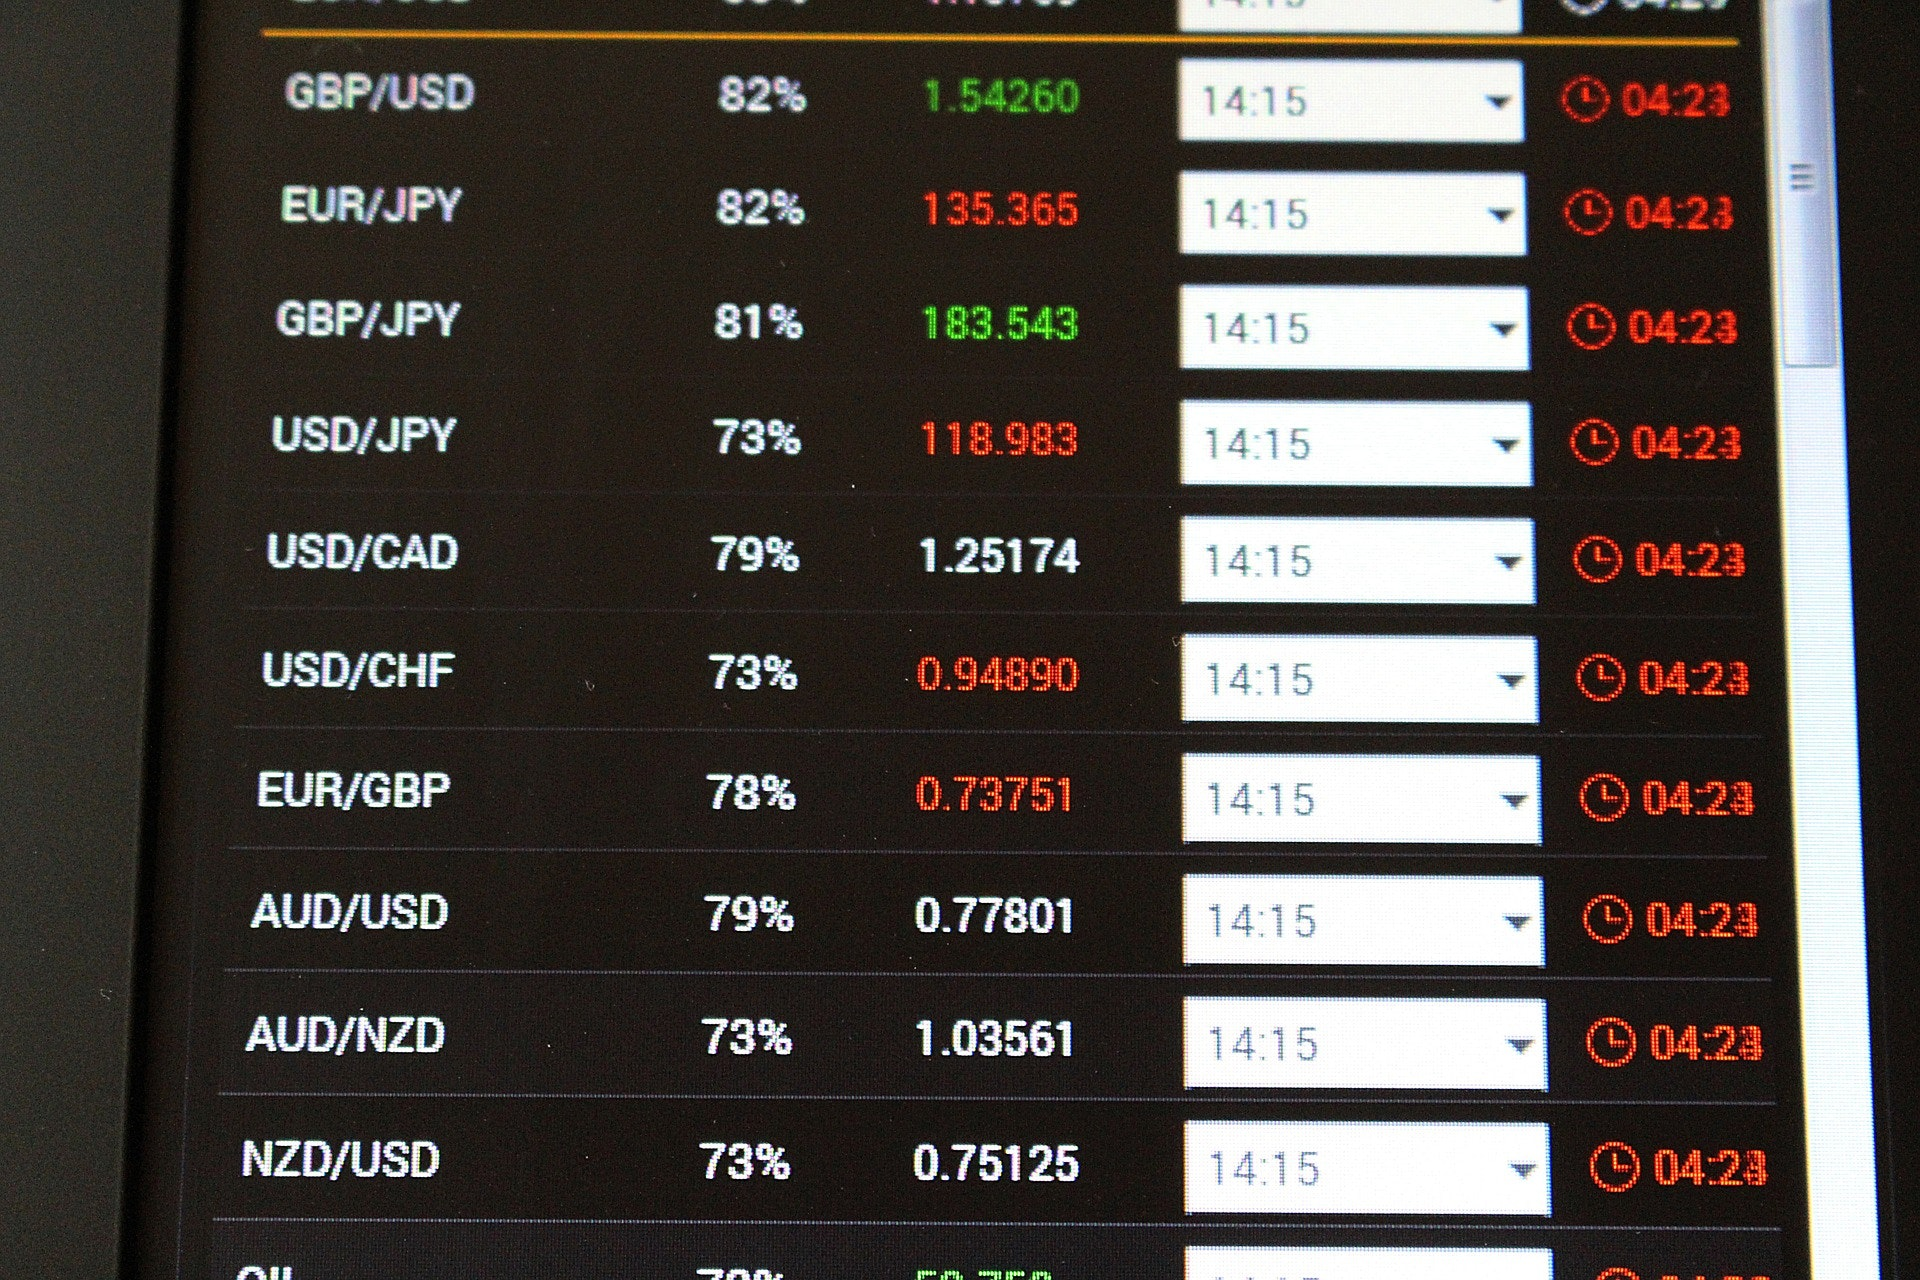 The Top 10 Forex Currency Pairs